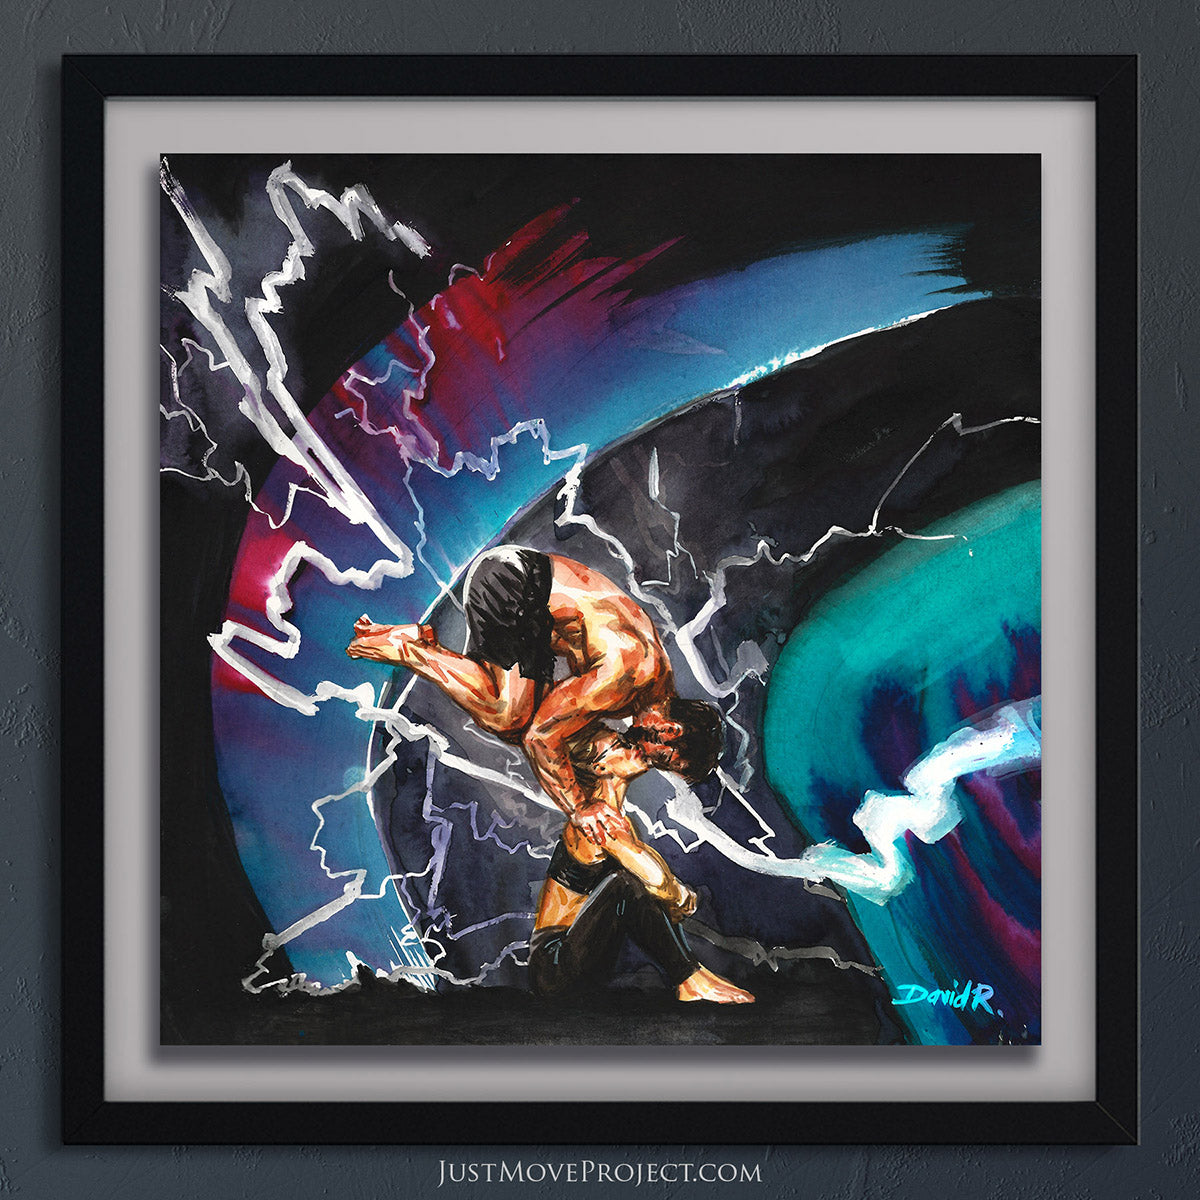 david roman art just move project 2 watercolour watercolor painting vibrant wall art home decor wall art framed canvas inspired by movement and athletes turquoise teal chelsey korus mike aidala power couple strong women